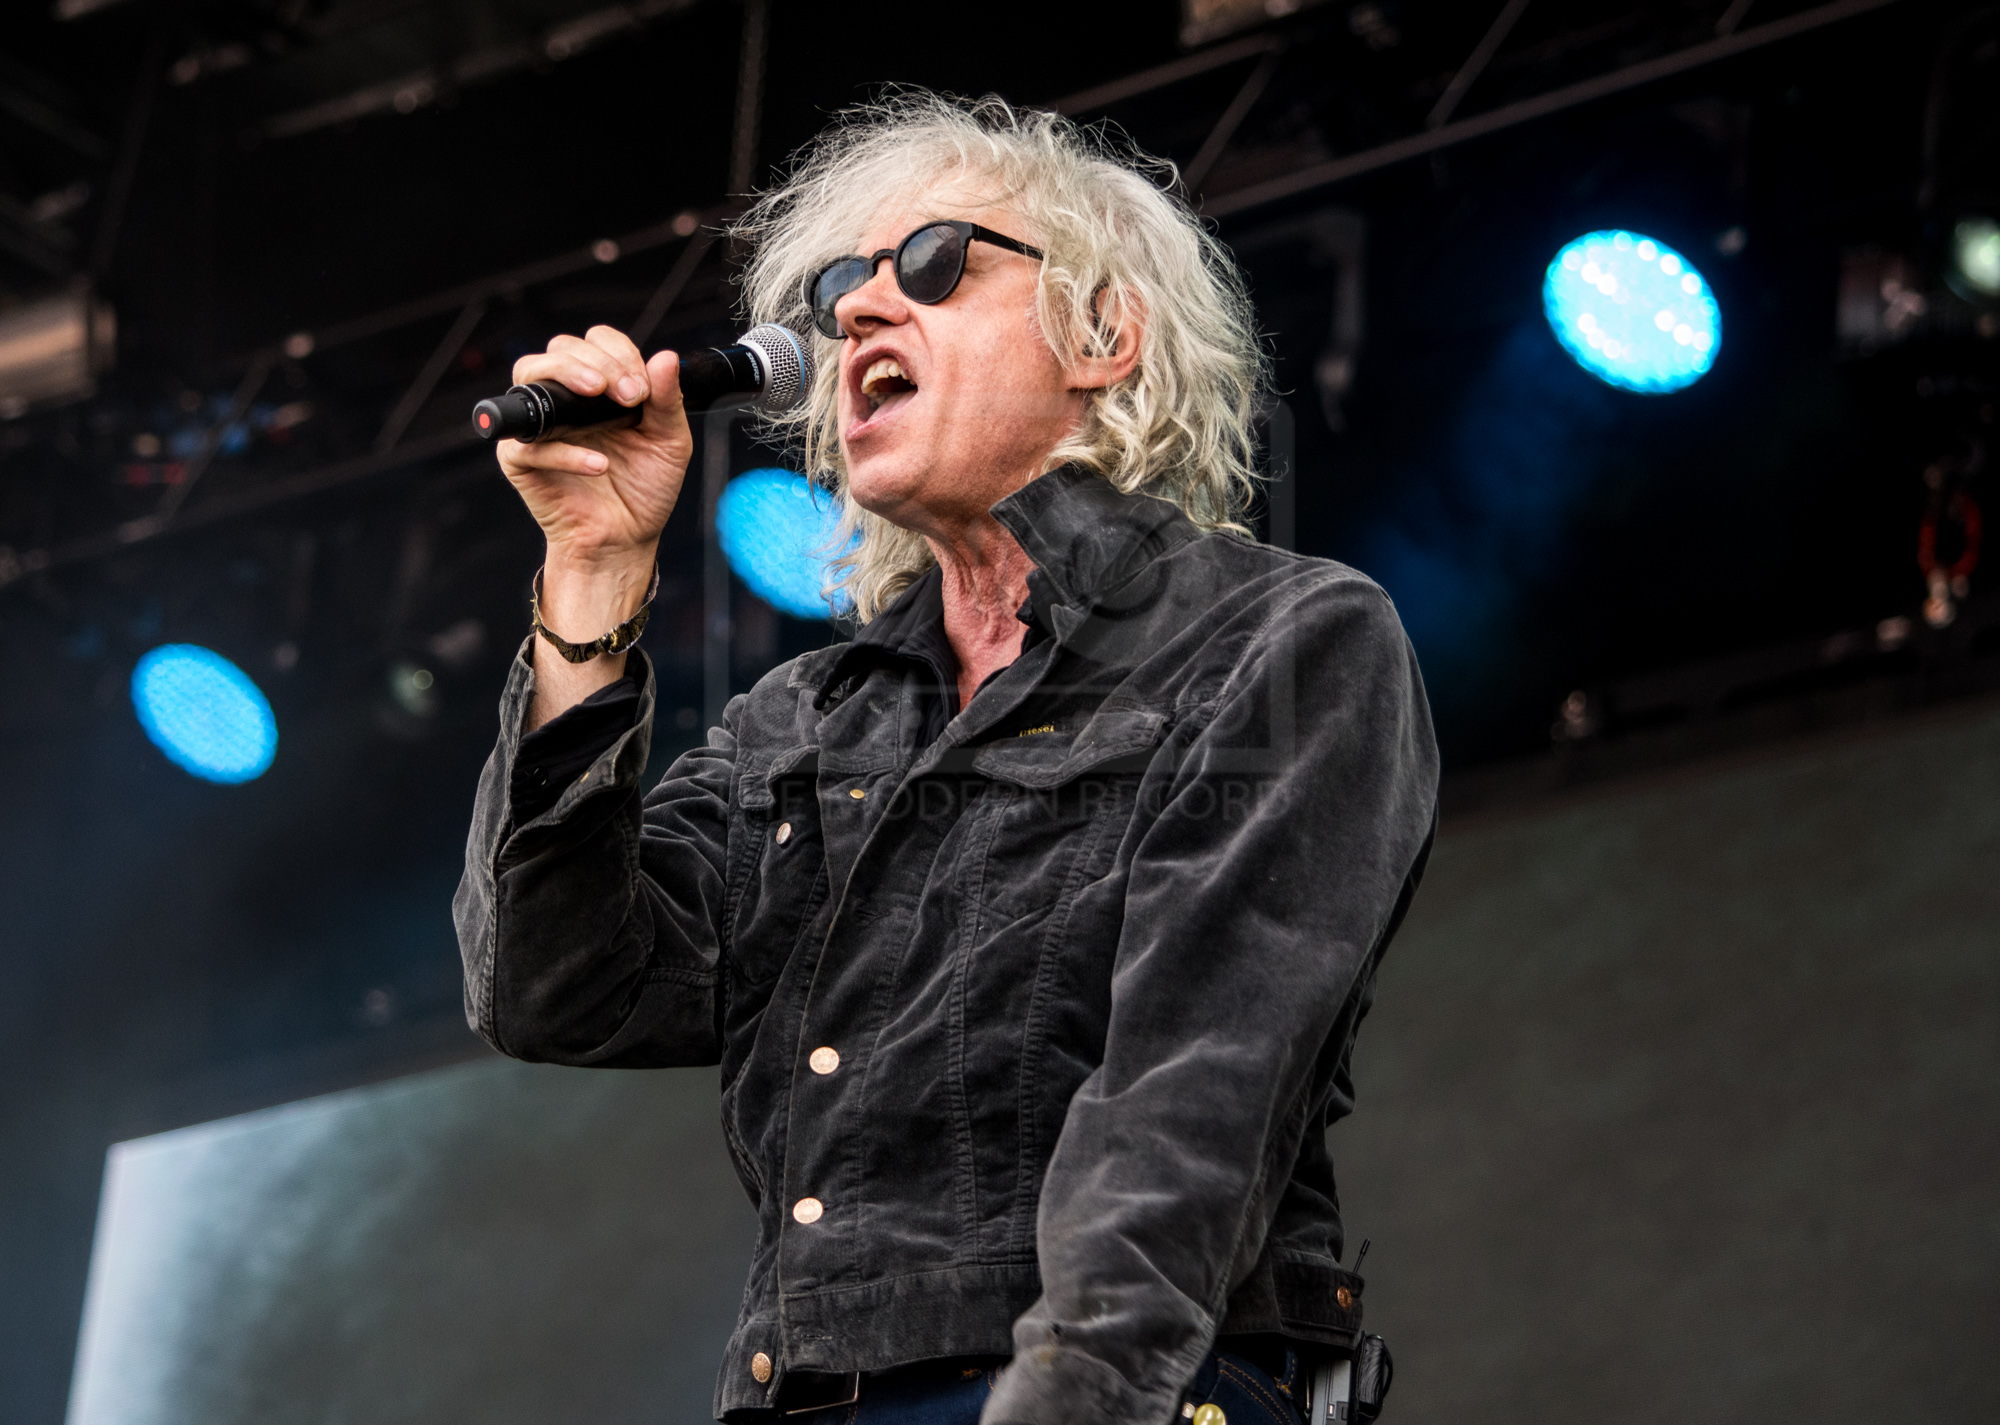 THE BOOMTOWN RATS PERFORMING AT REWIND! SCOTLAND - SUNDAY - 22.08.2018  PICTURE BY: STEPHEN WILSON PHOTOGRAPHY